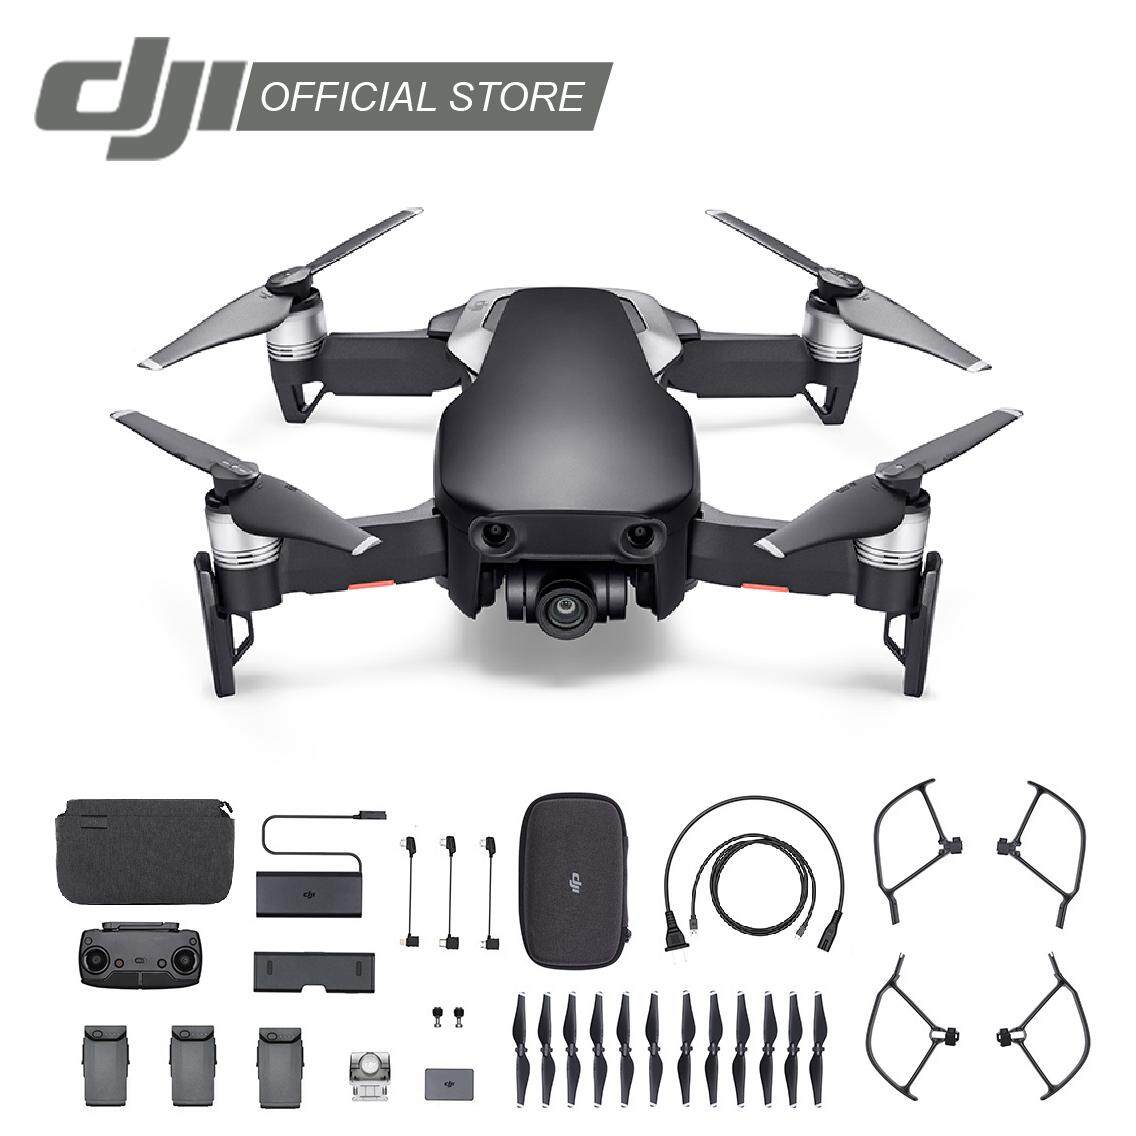 Dji Mavic Air Flymore Combo (6 Months Extended Warranty Worth Rm400 + Cinematic Video Editing Workshop Rm599 Only At Official Online Store) By Dji Malaysia Official Store.